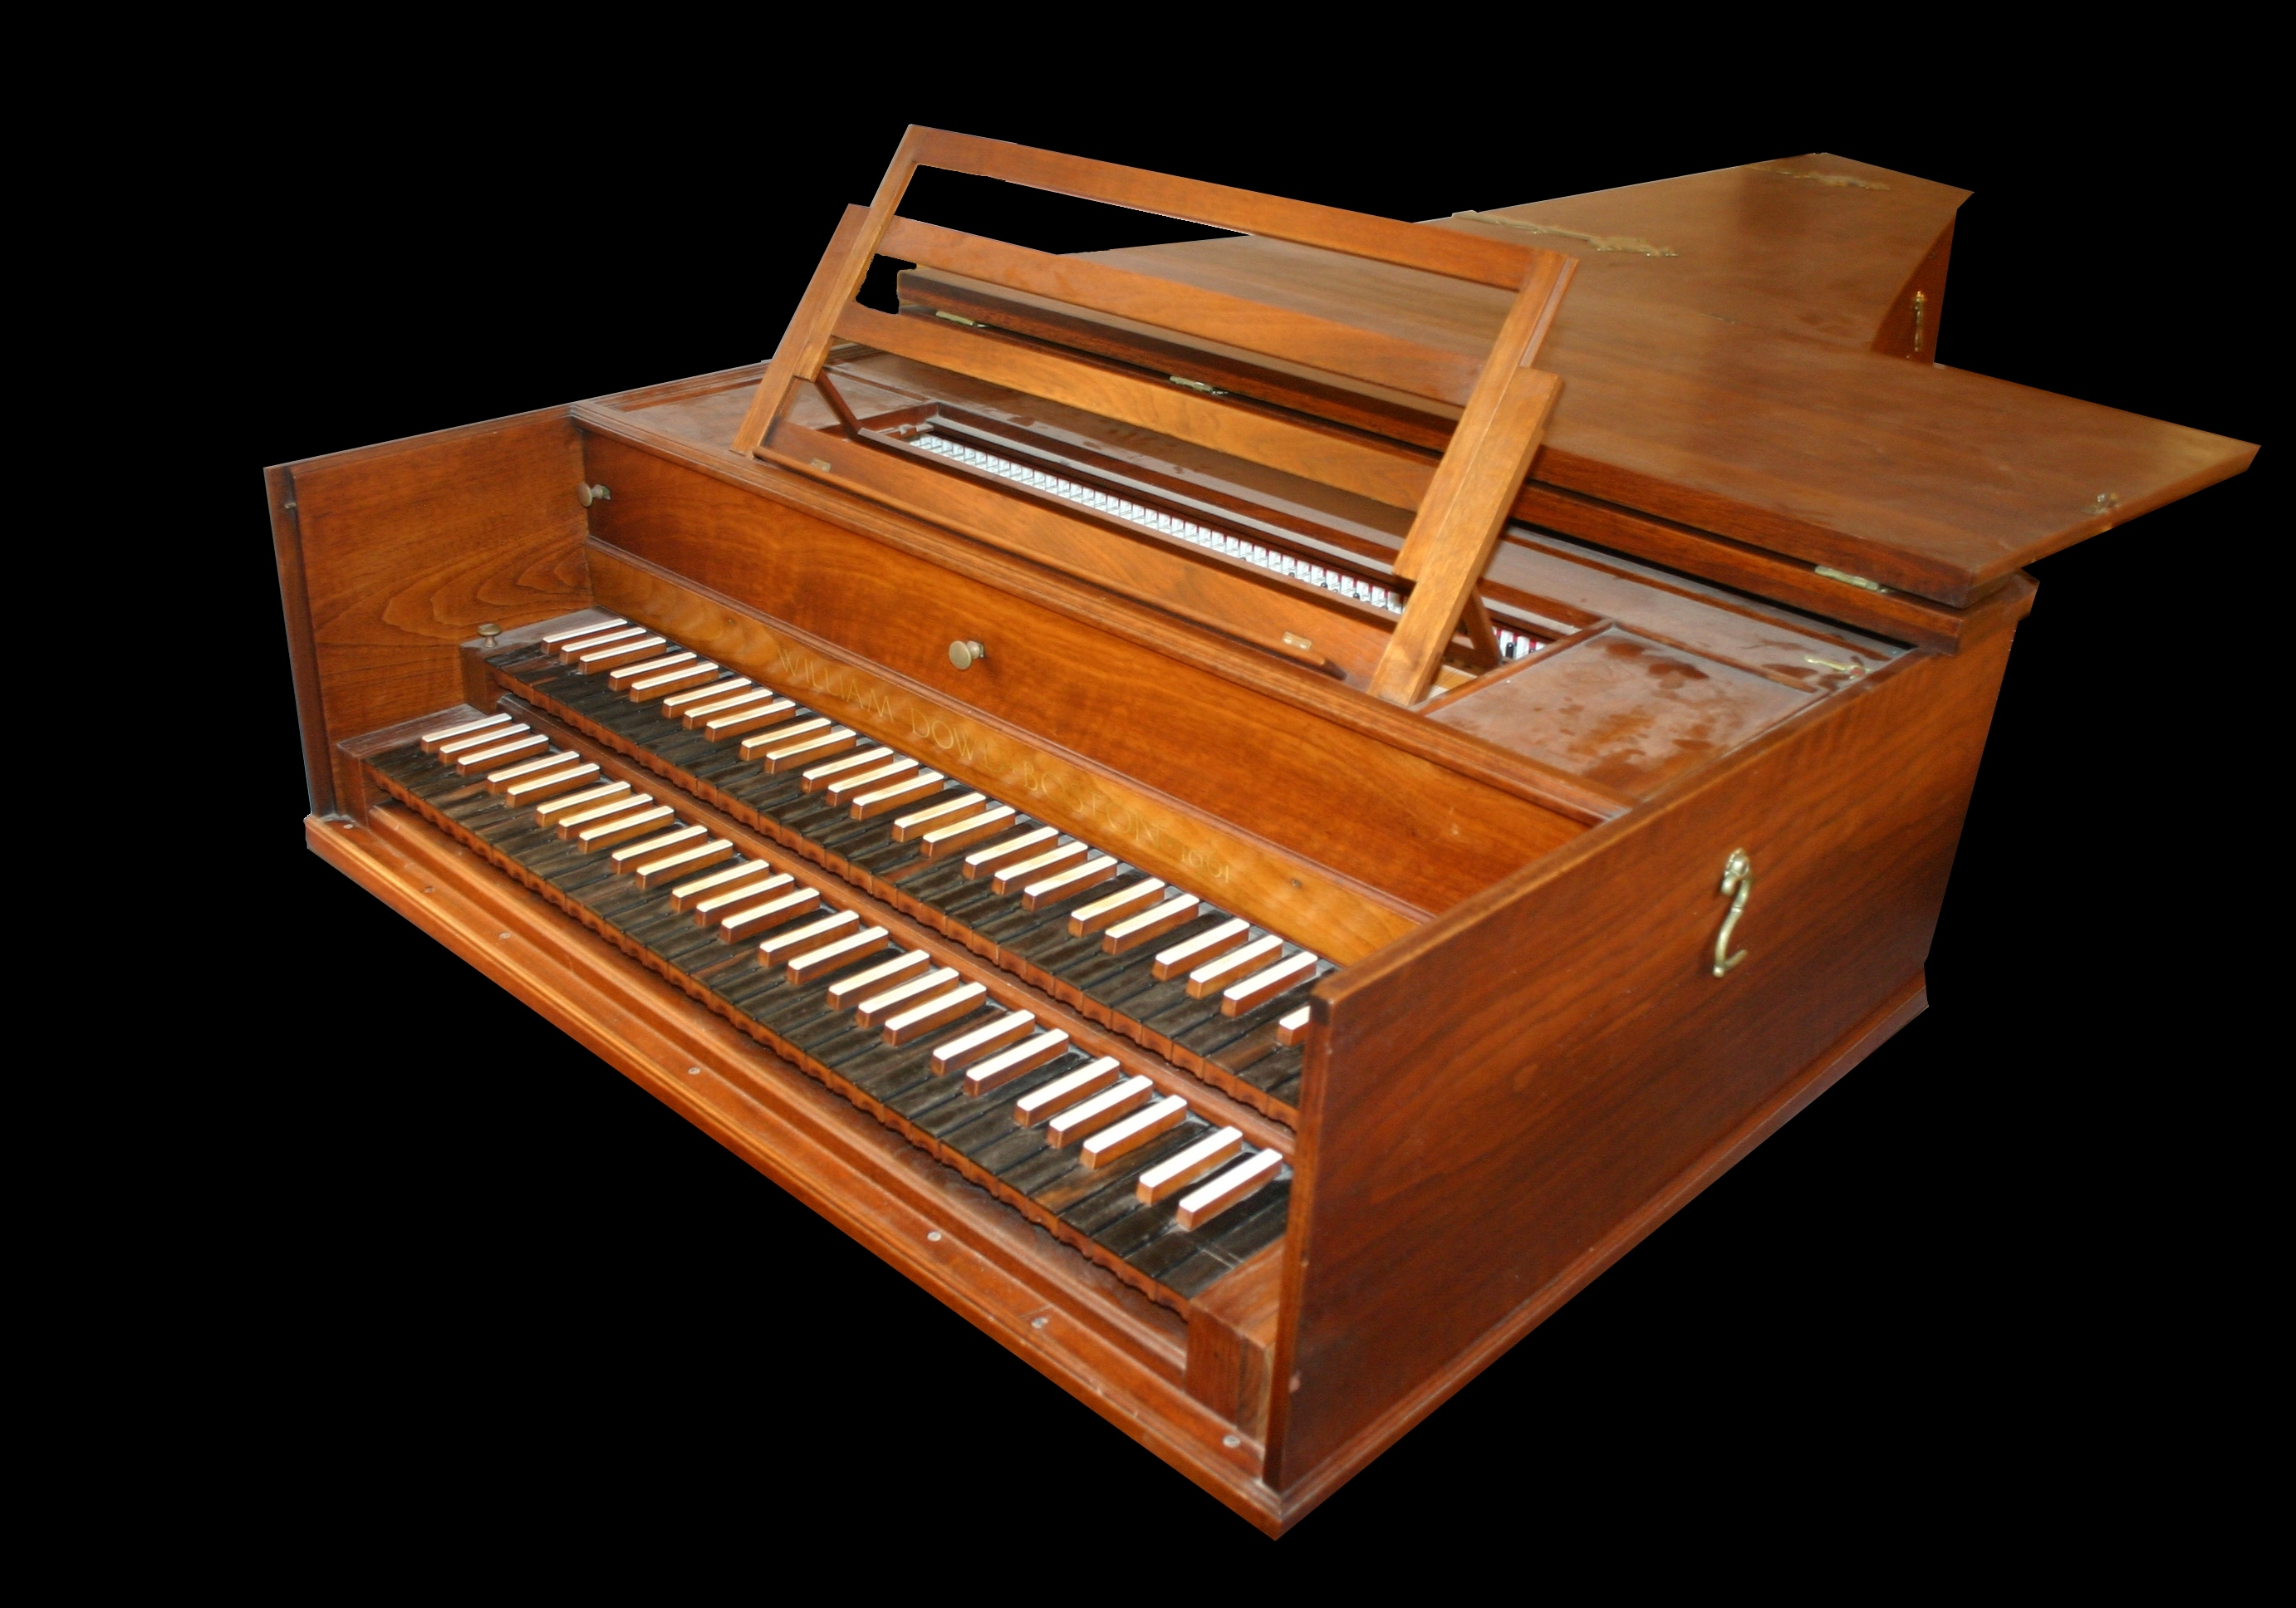 ... .org: Information about the Harpsichord - Downloadable